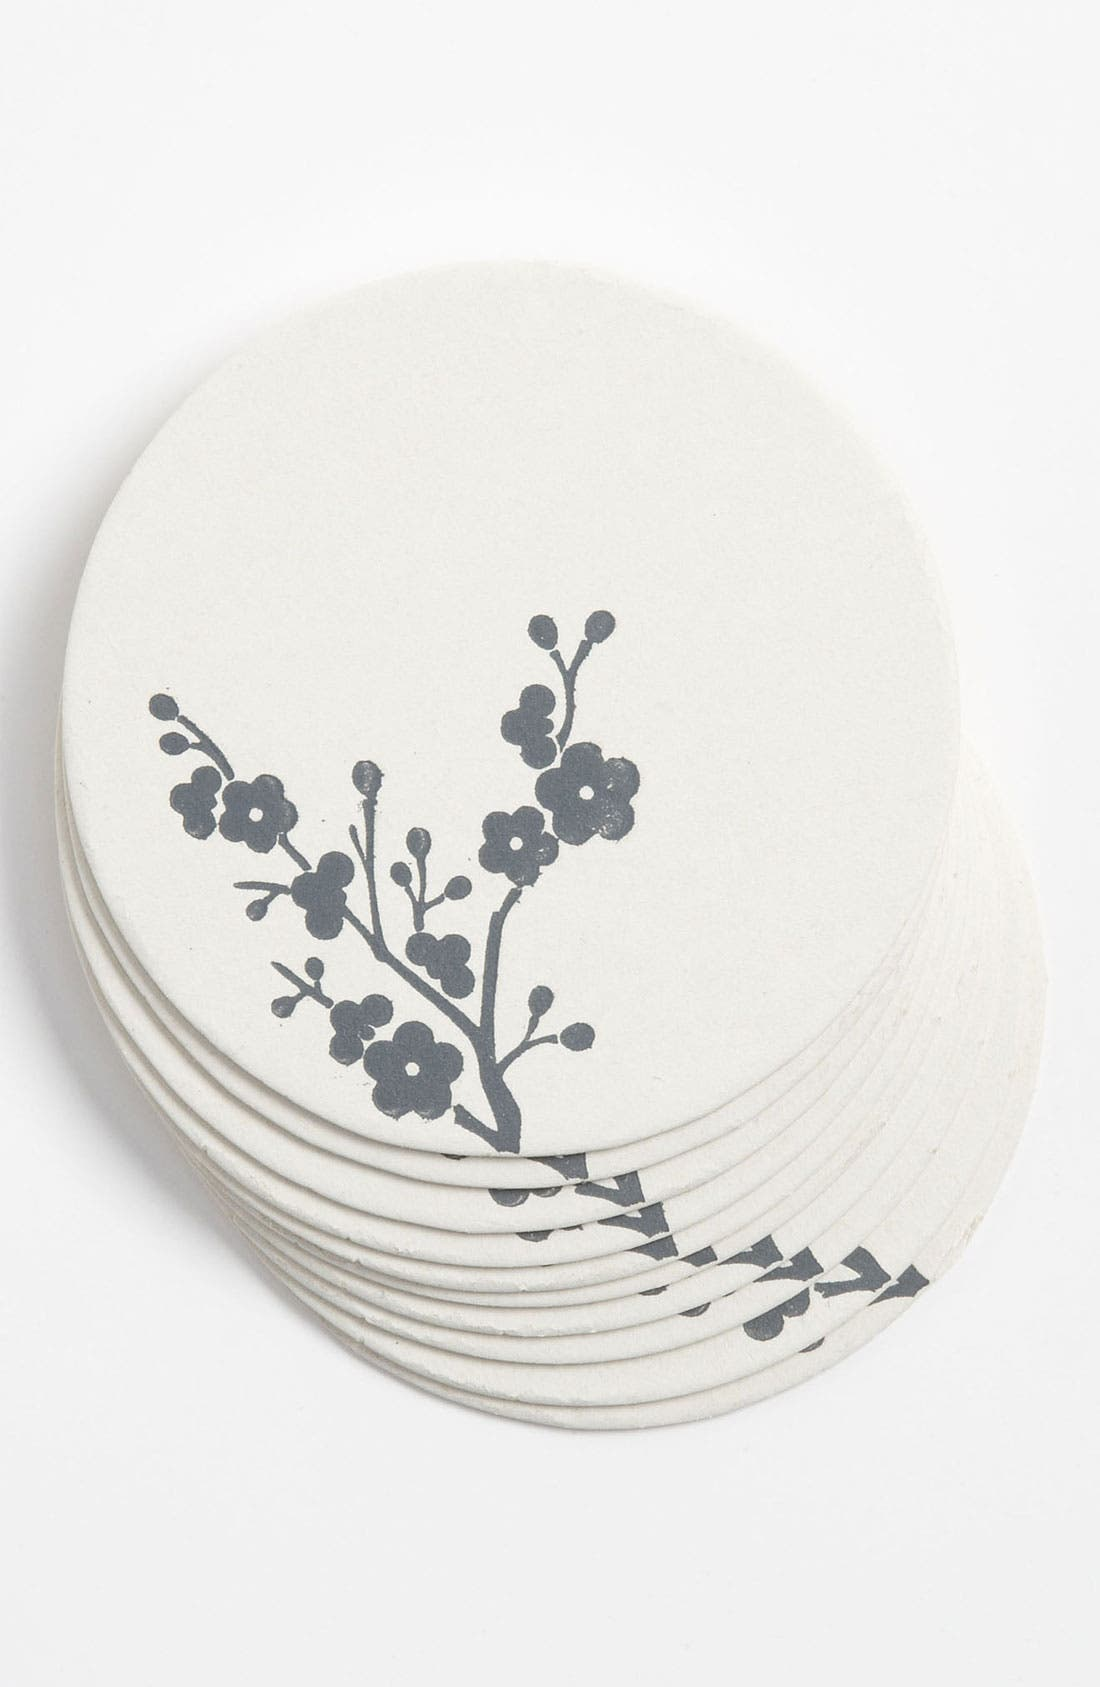 Main Image - herry Blossoms' Letterpress Coasters (Set of 10)